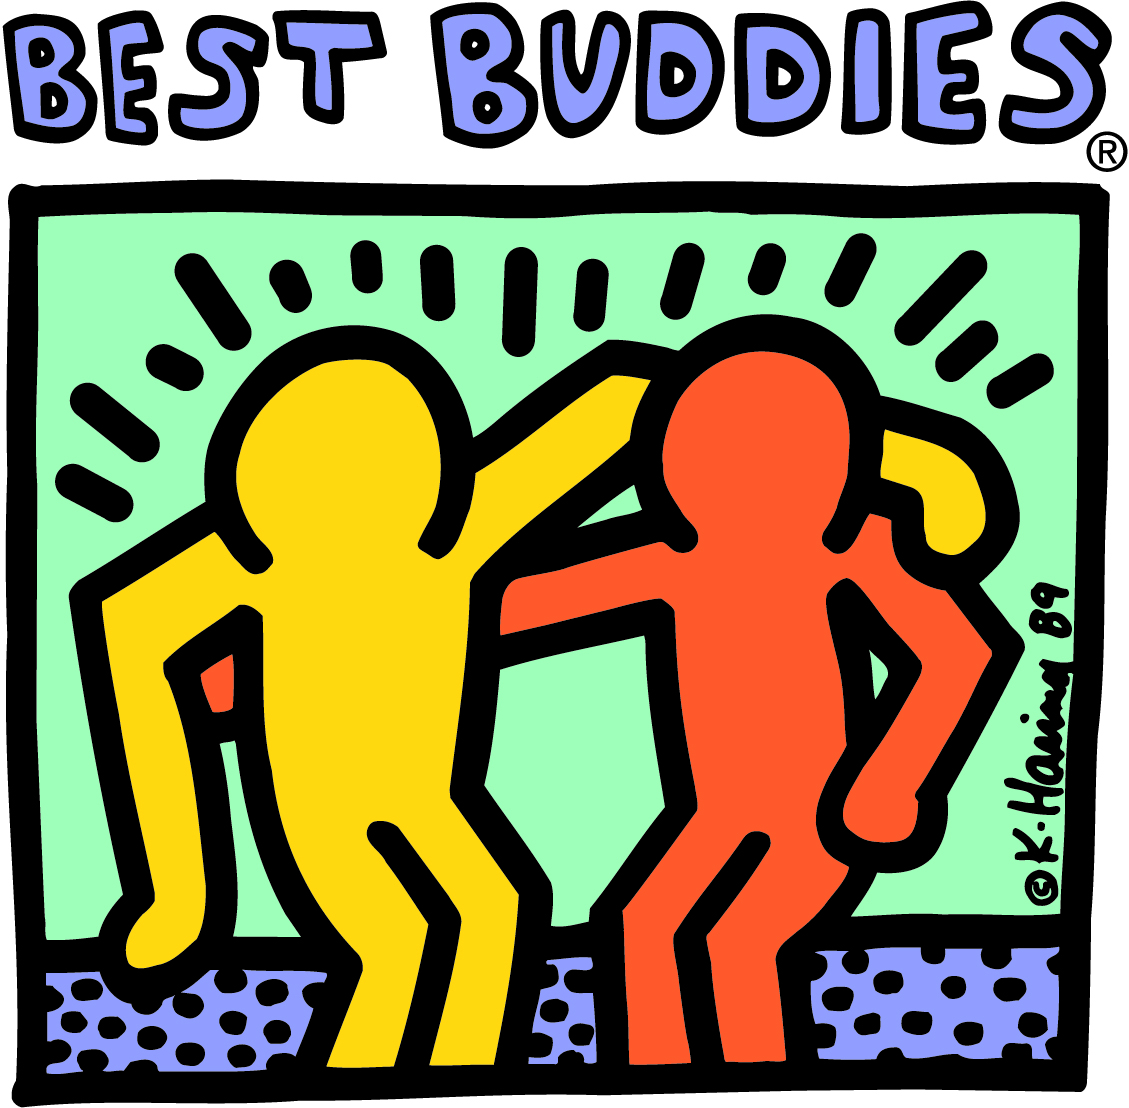 Best Buddies' Photo